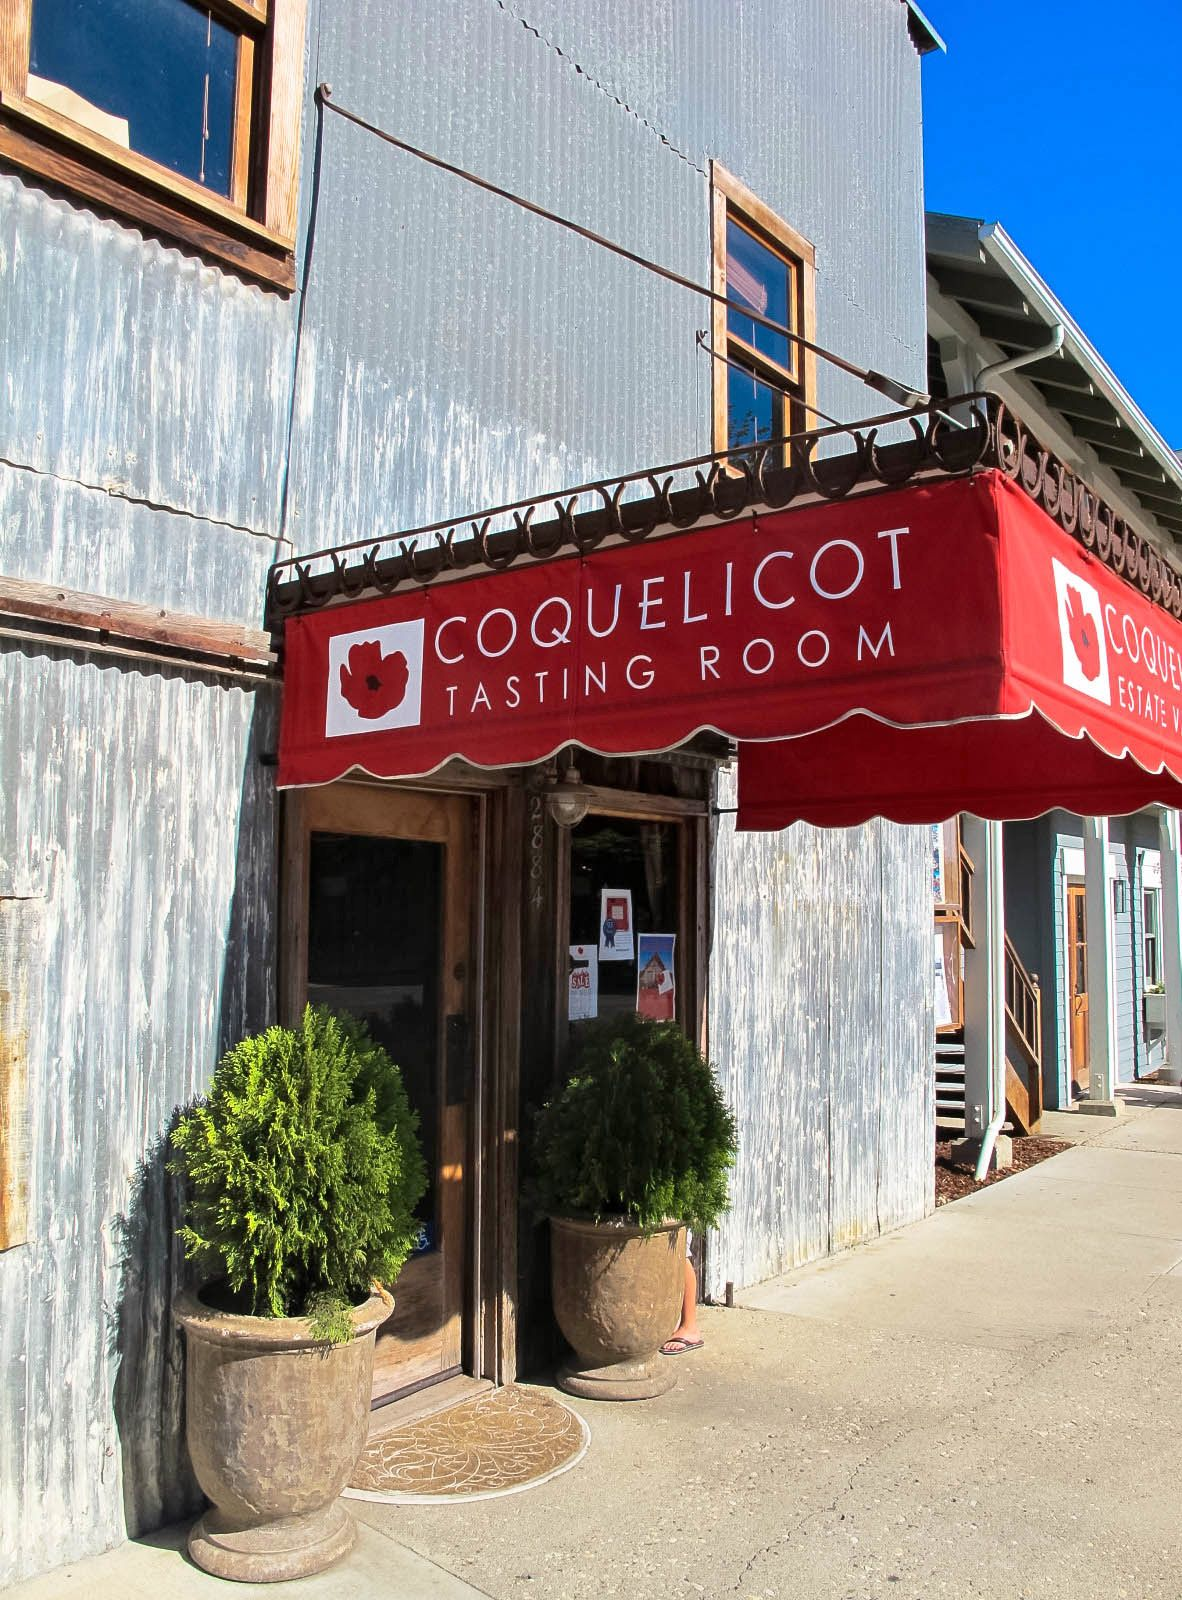 Coquelicot Estate Winery Tasting Room Wine Recipes Travel Food